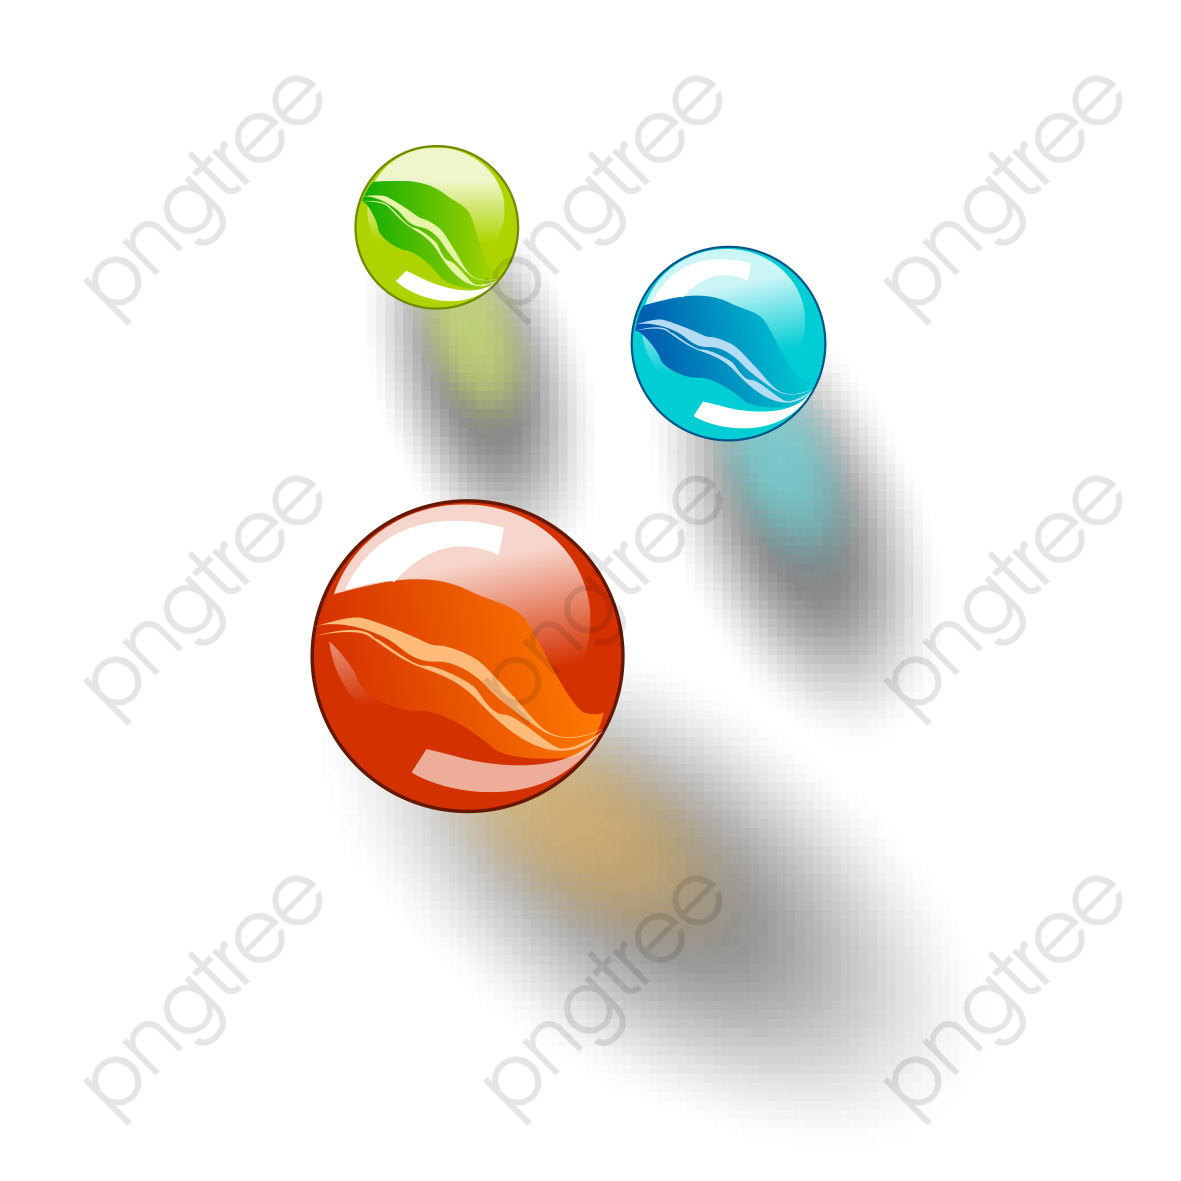 Marbles clipart marble ball. Download for free png